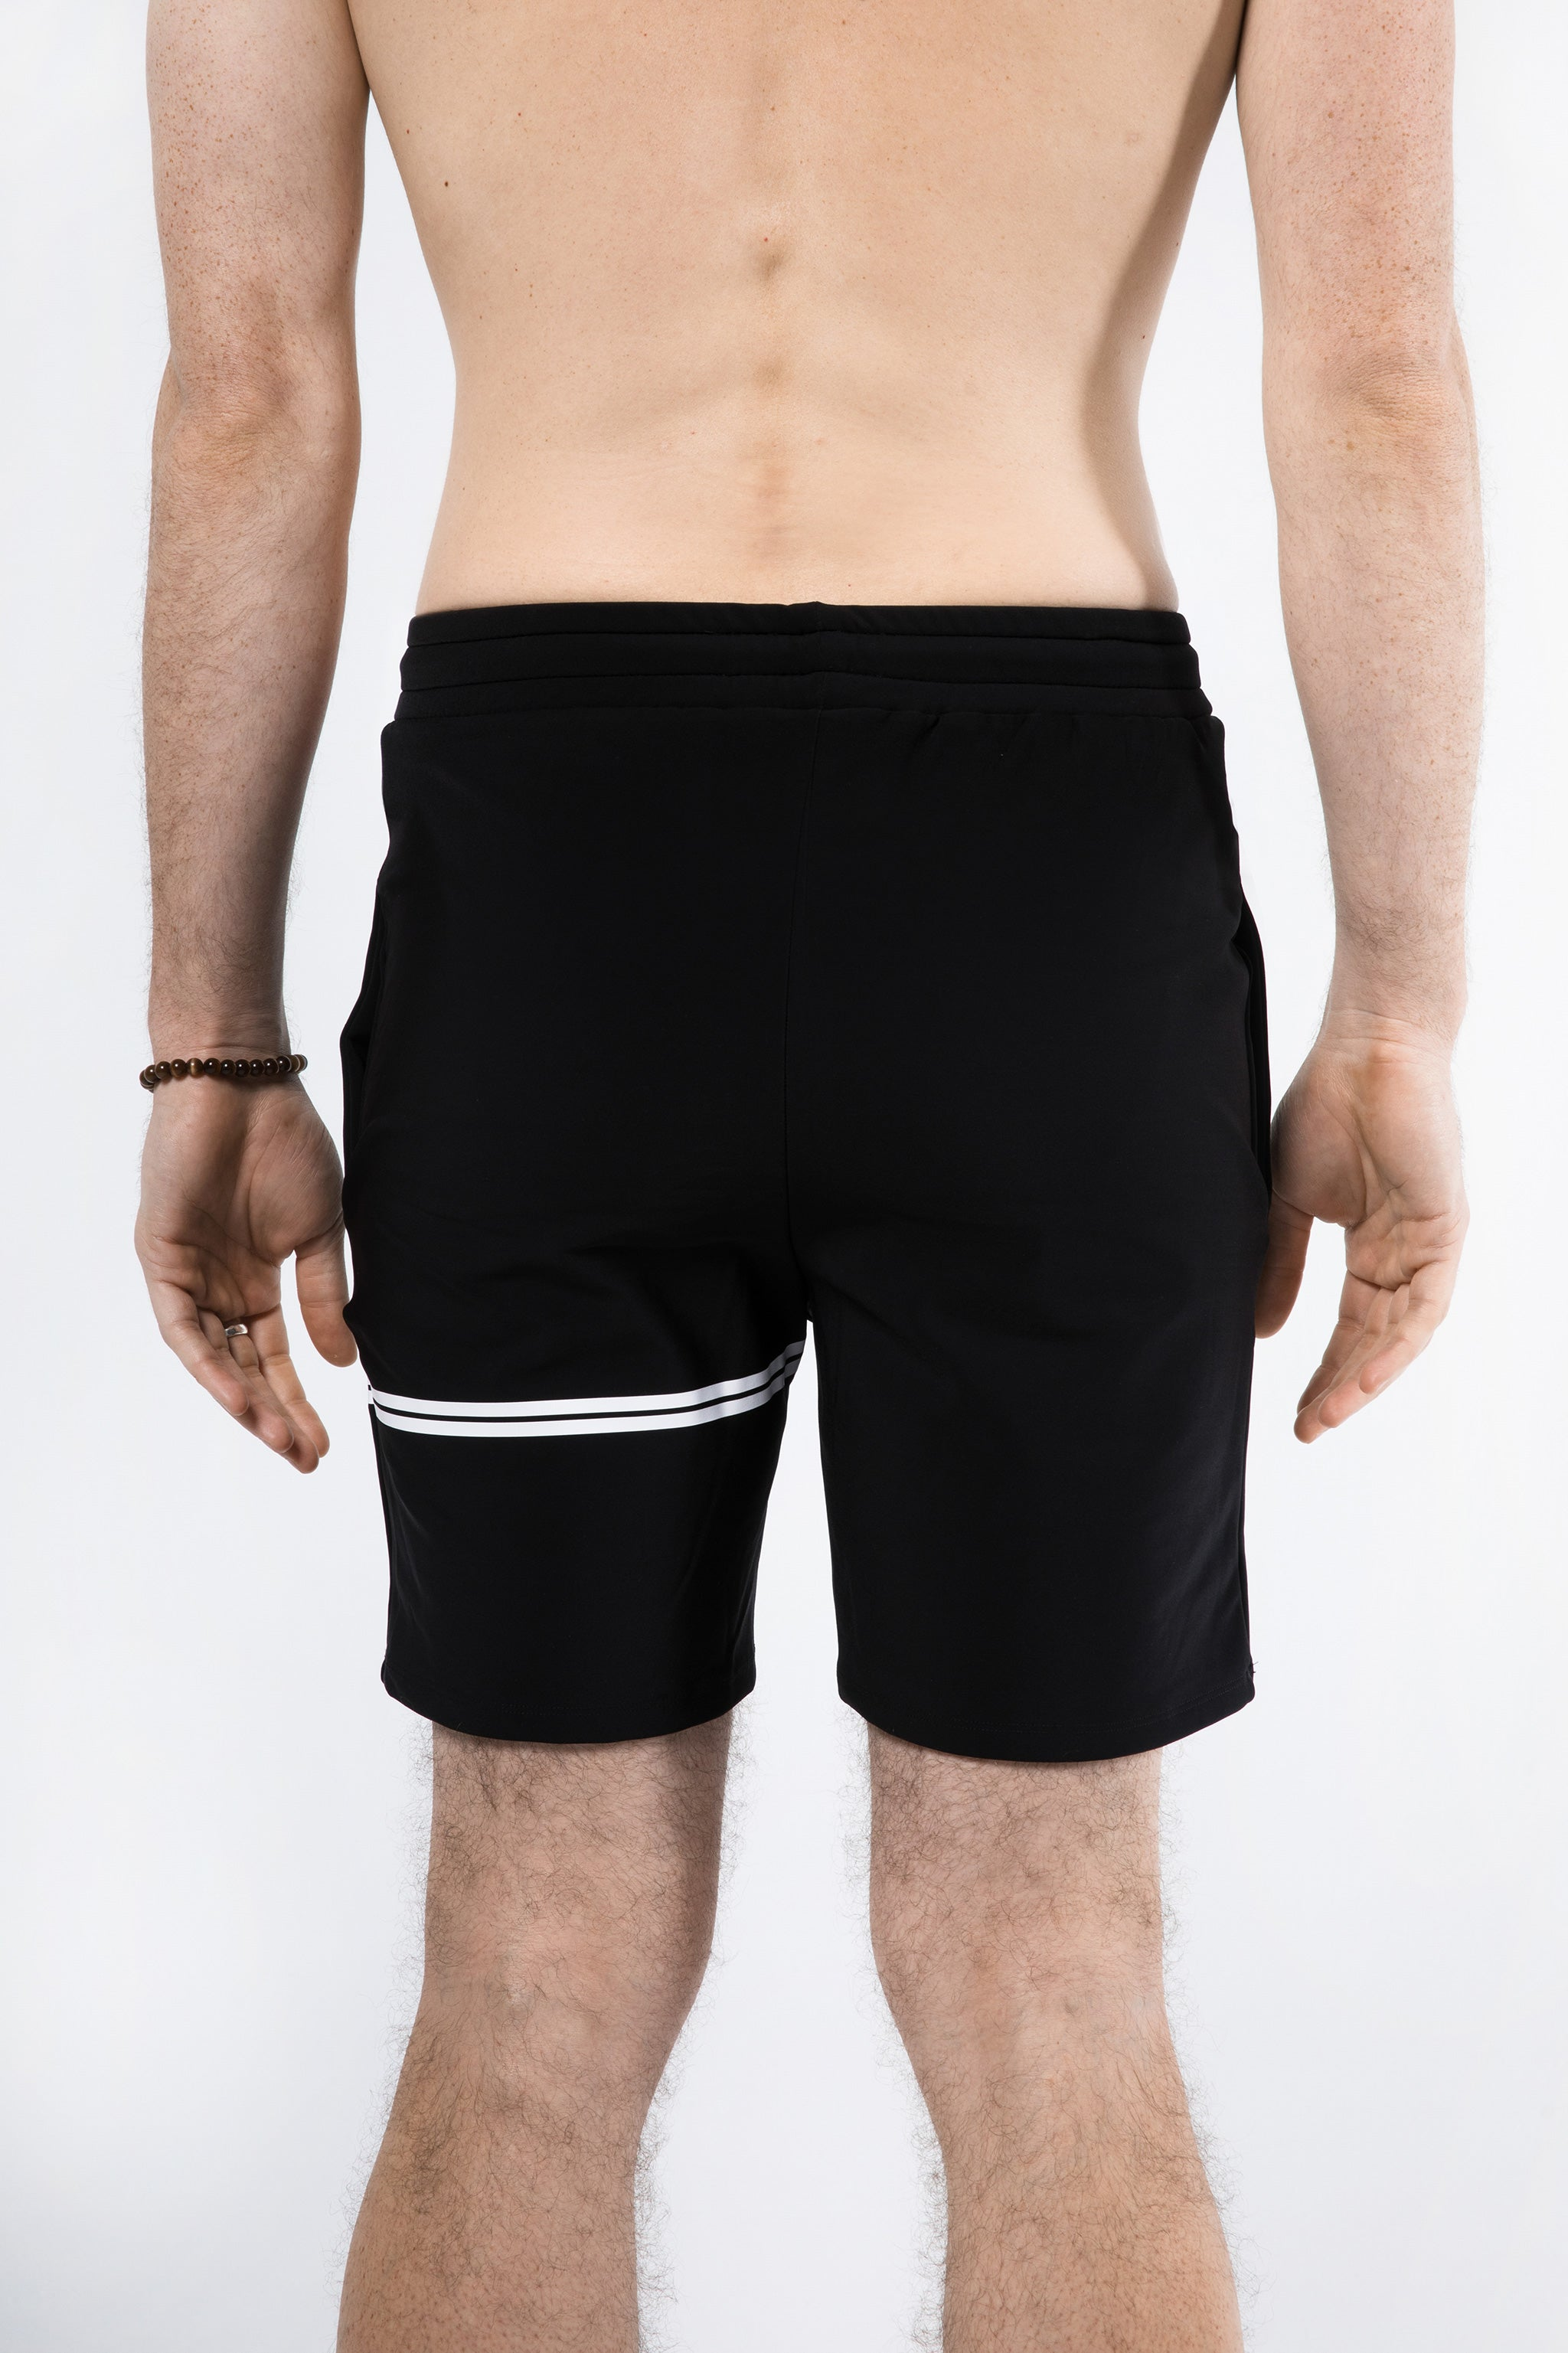 Yoga Shorts for Men, Rear View